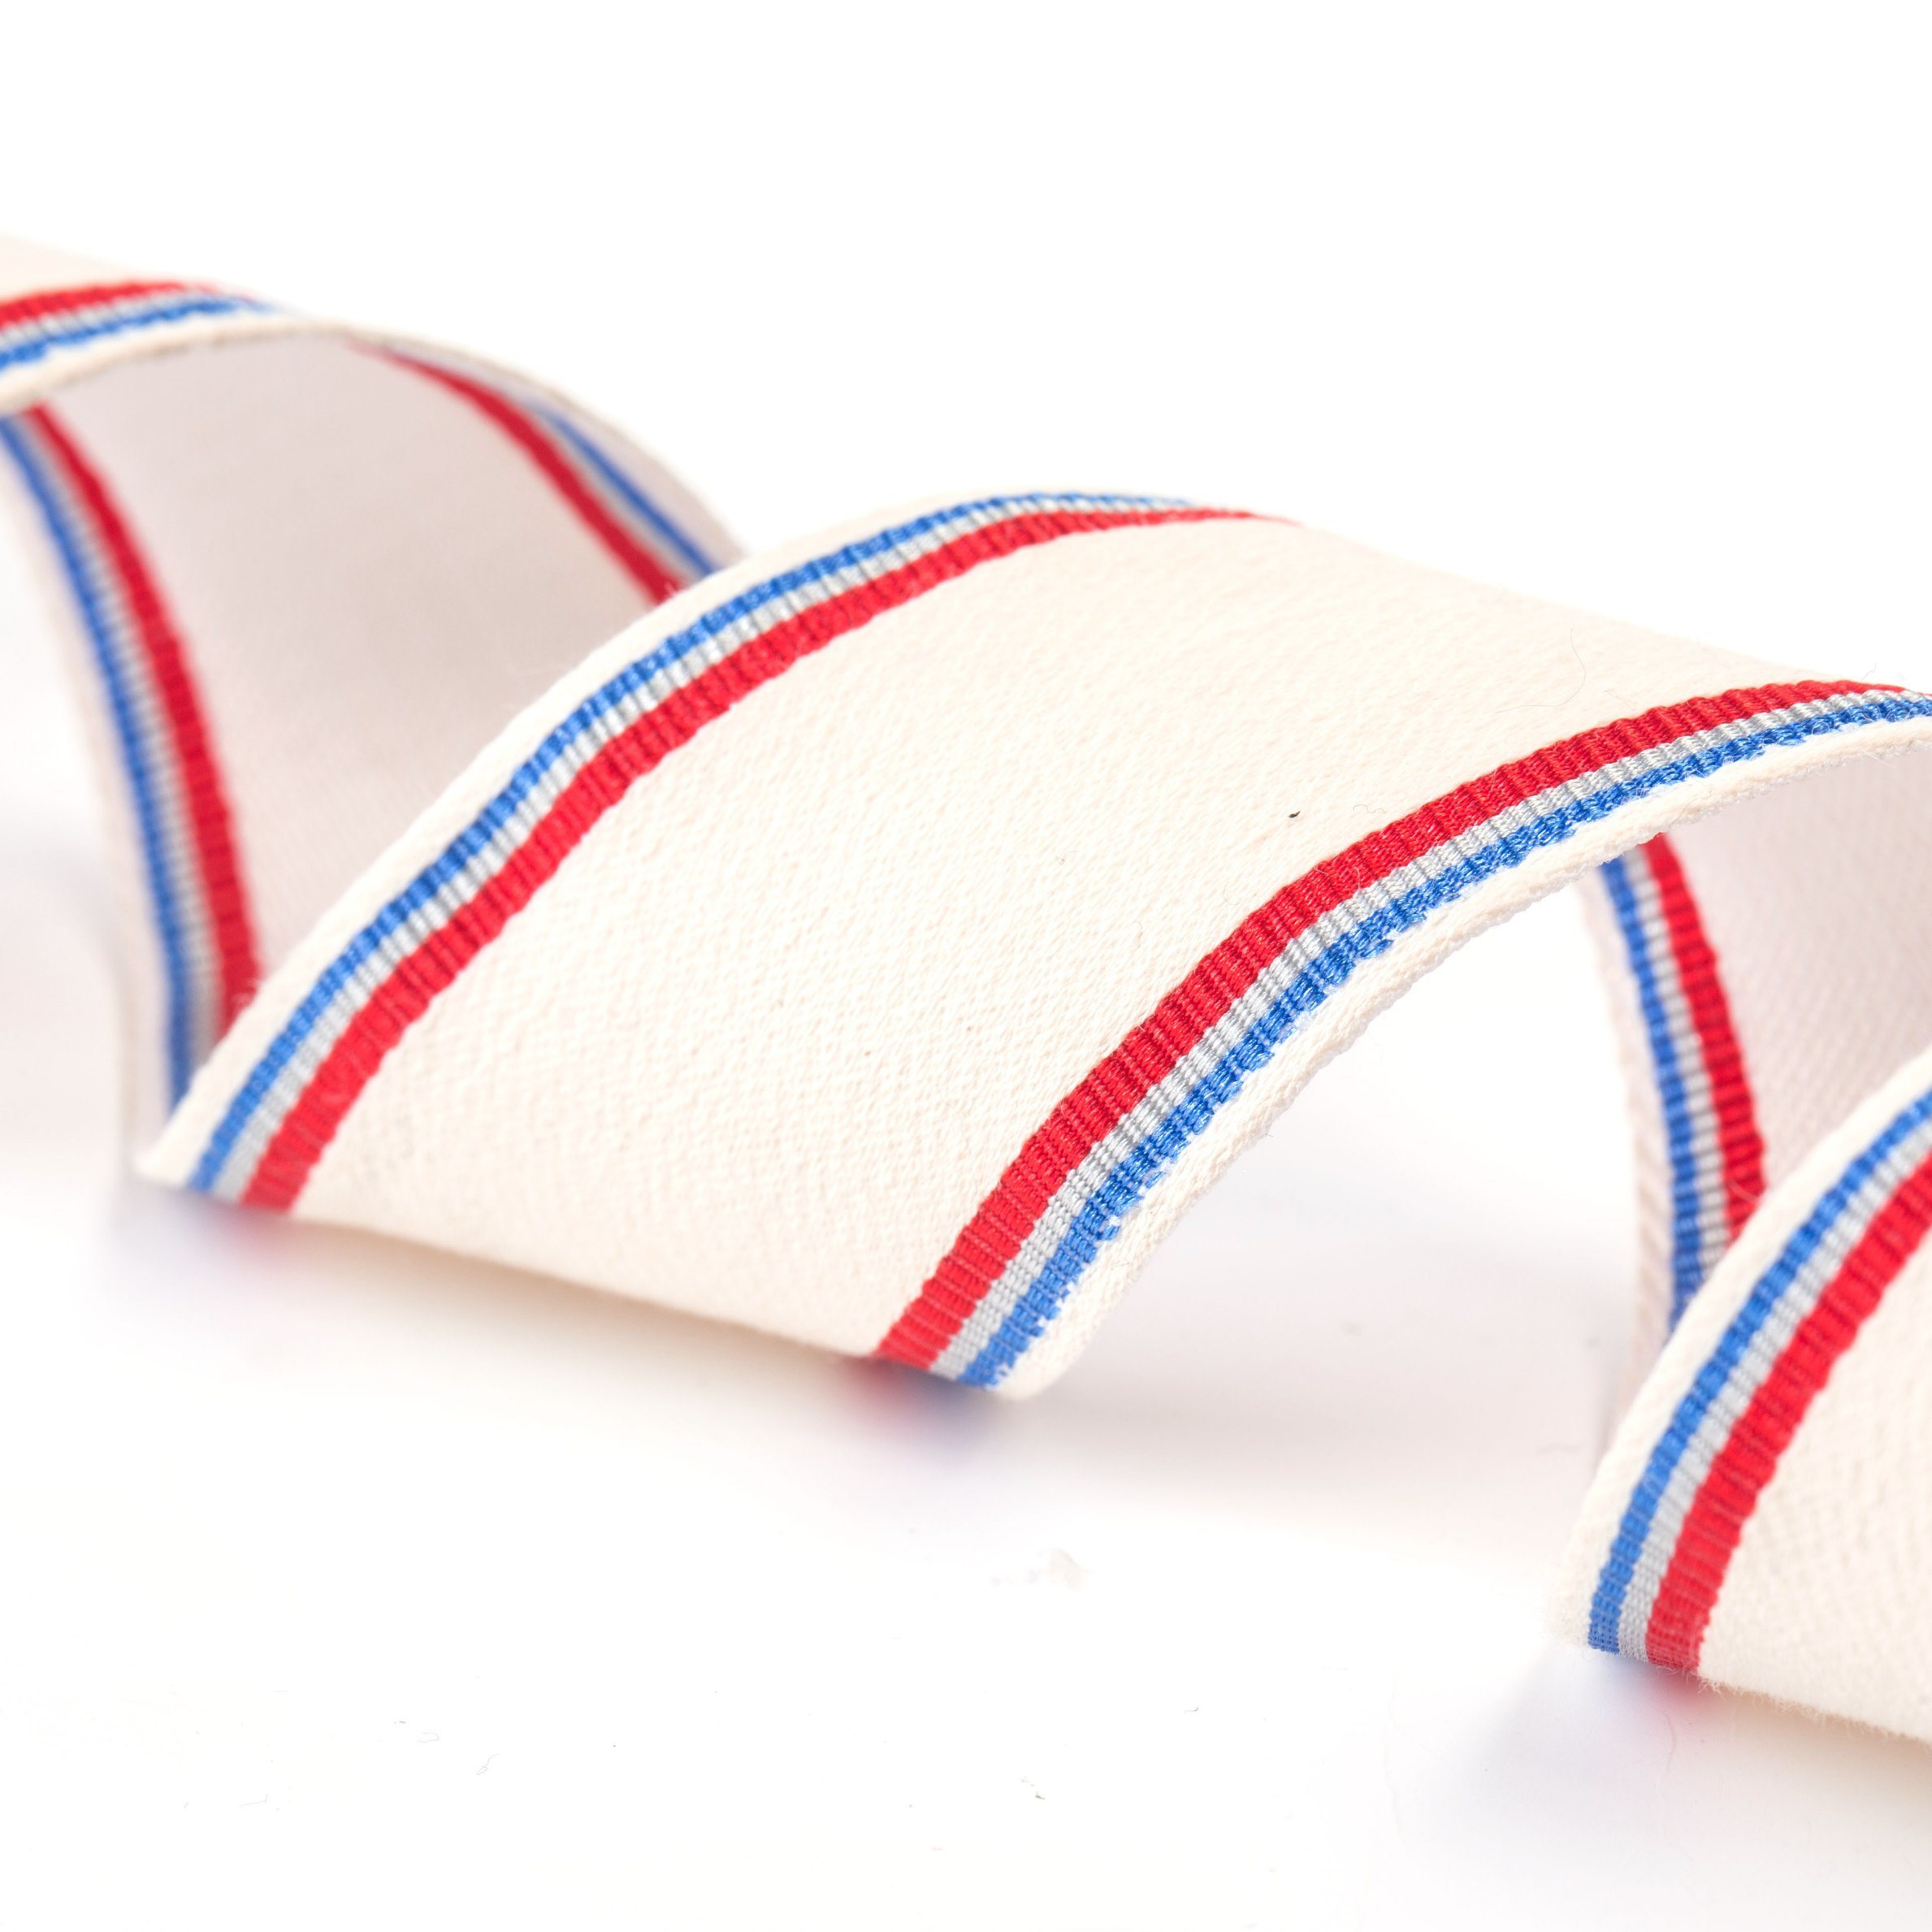 The Super Soft Lace Polyester Ribbon